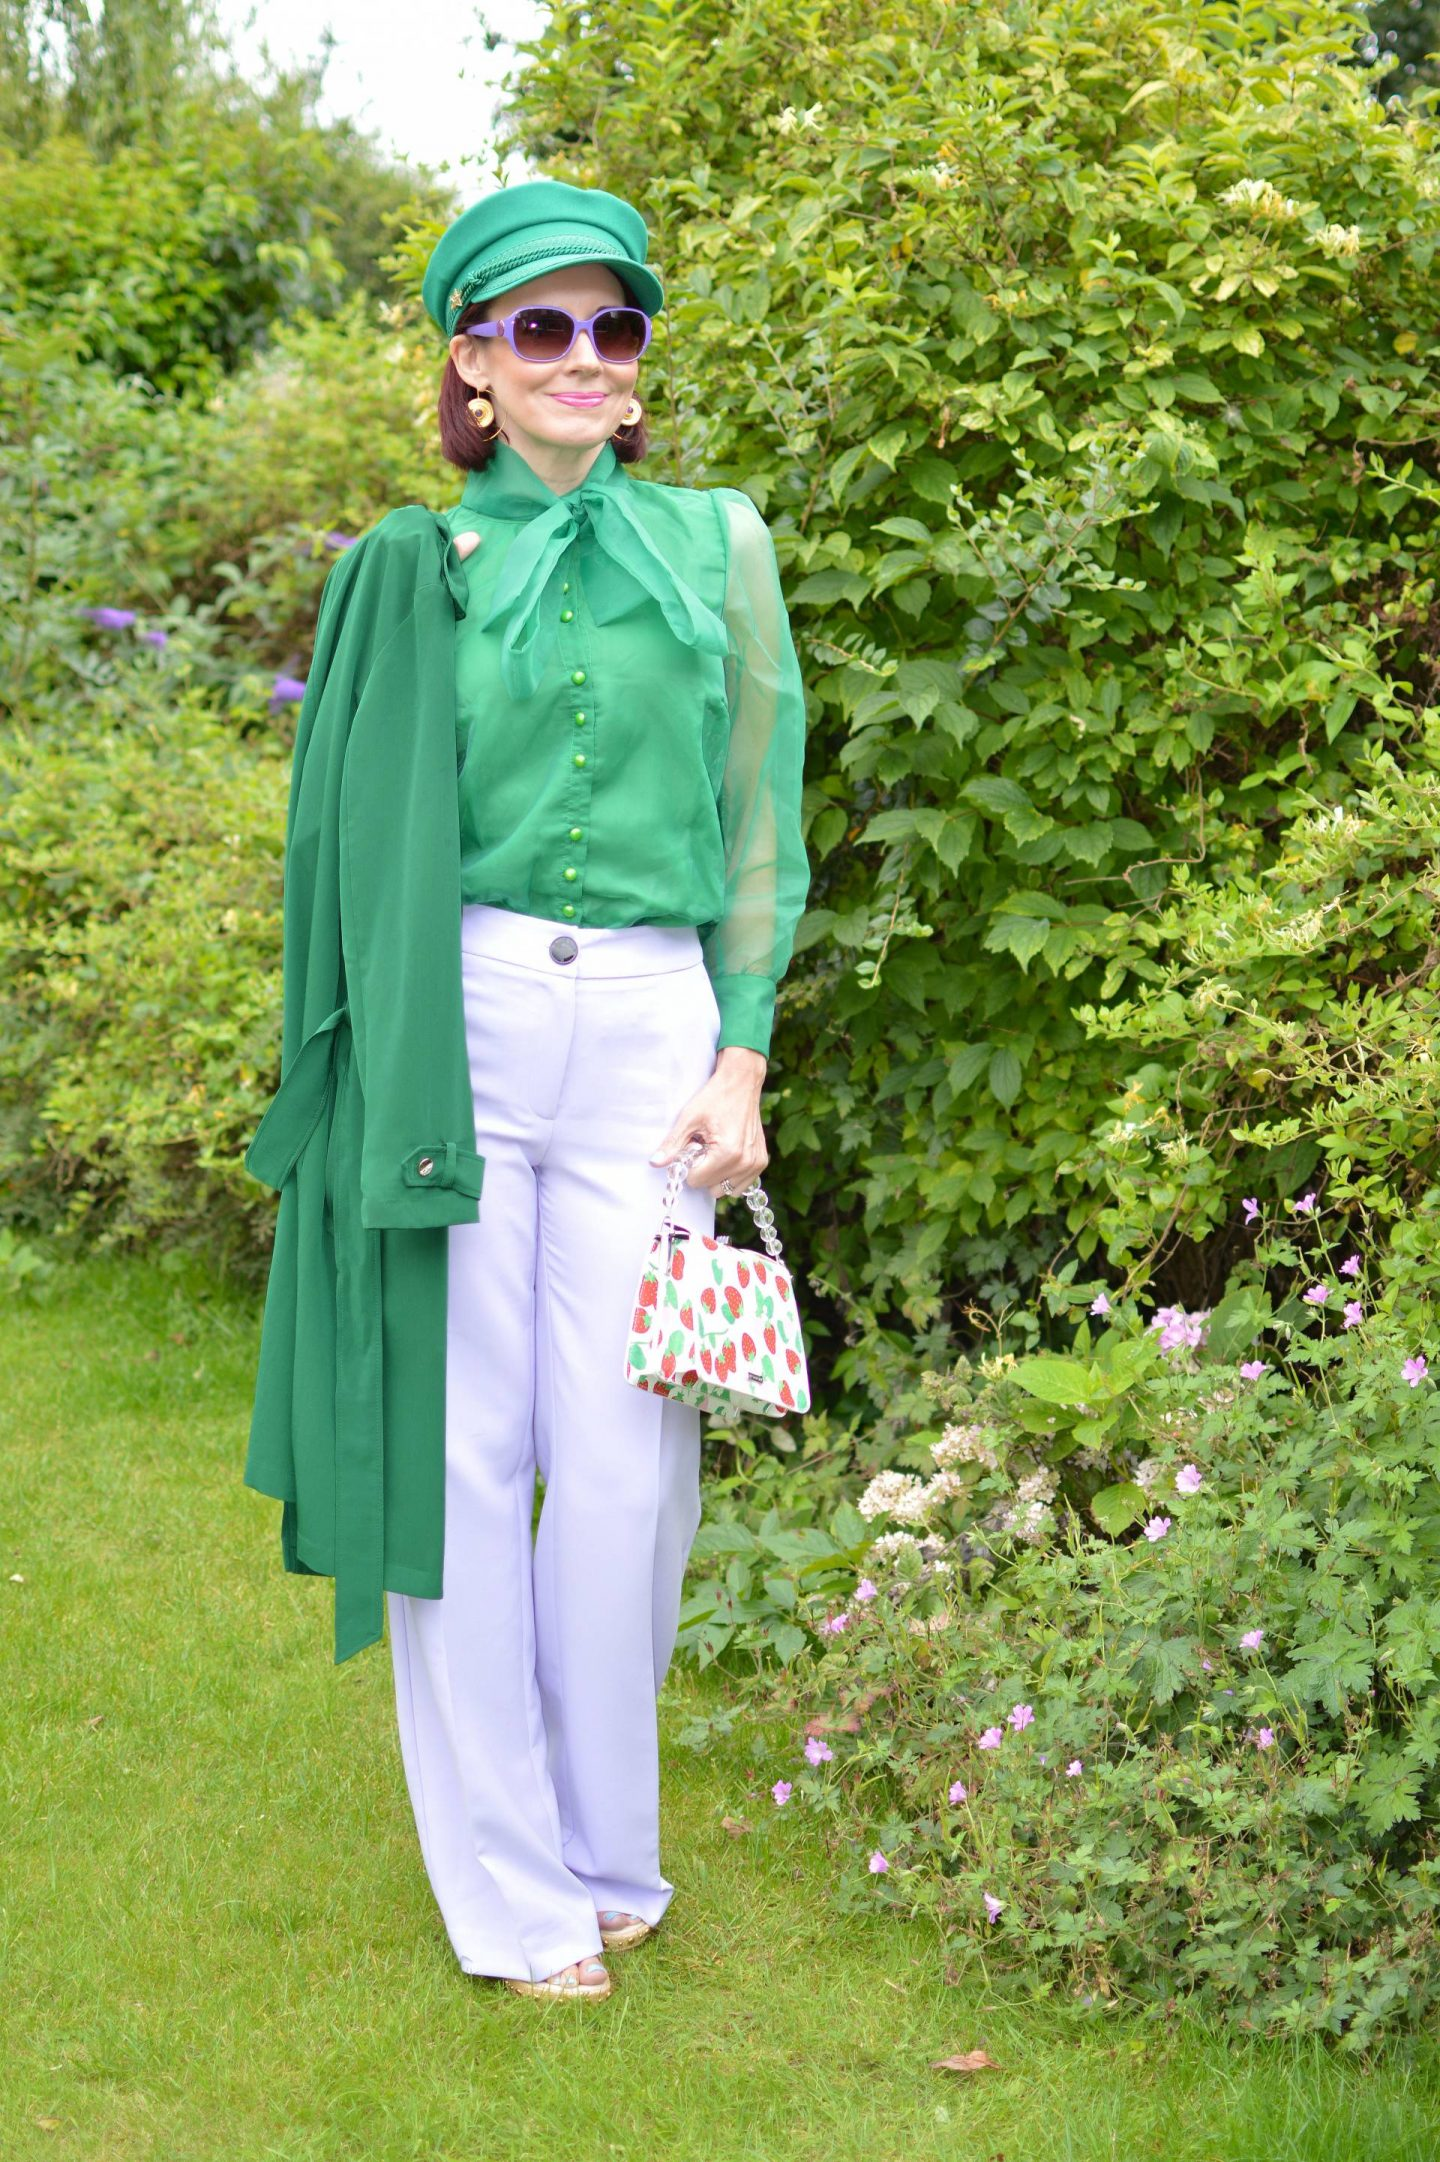 Green Organza Bow Blouse and Lilac Trousers, Fabienne Chapot green hat